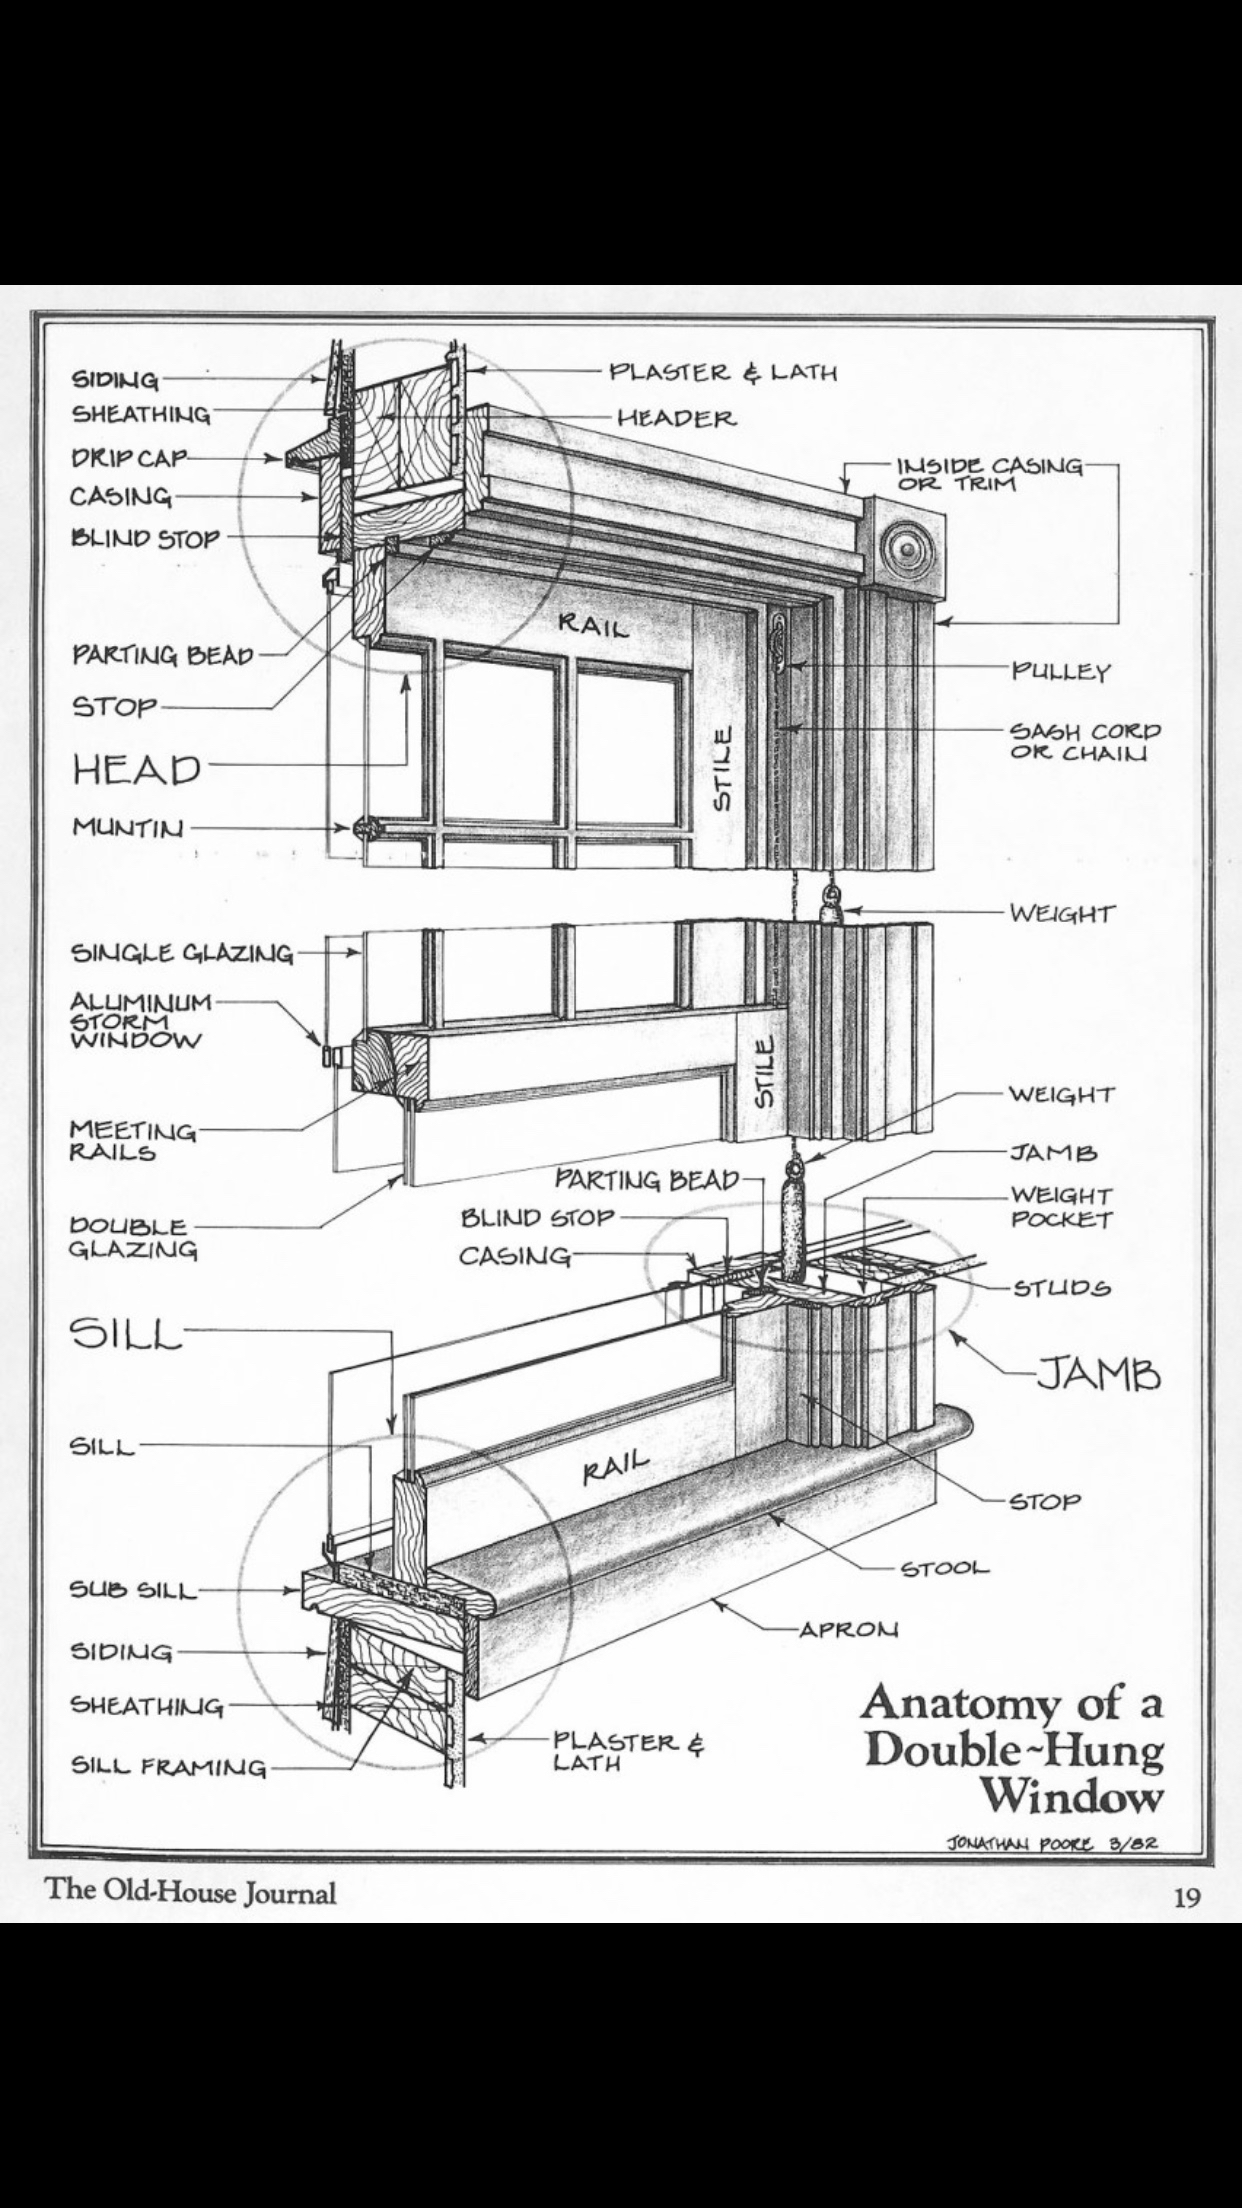 A break down of parts that make up a window. This is important since we restore and repair windows.